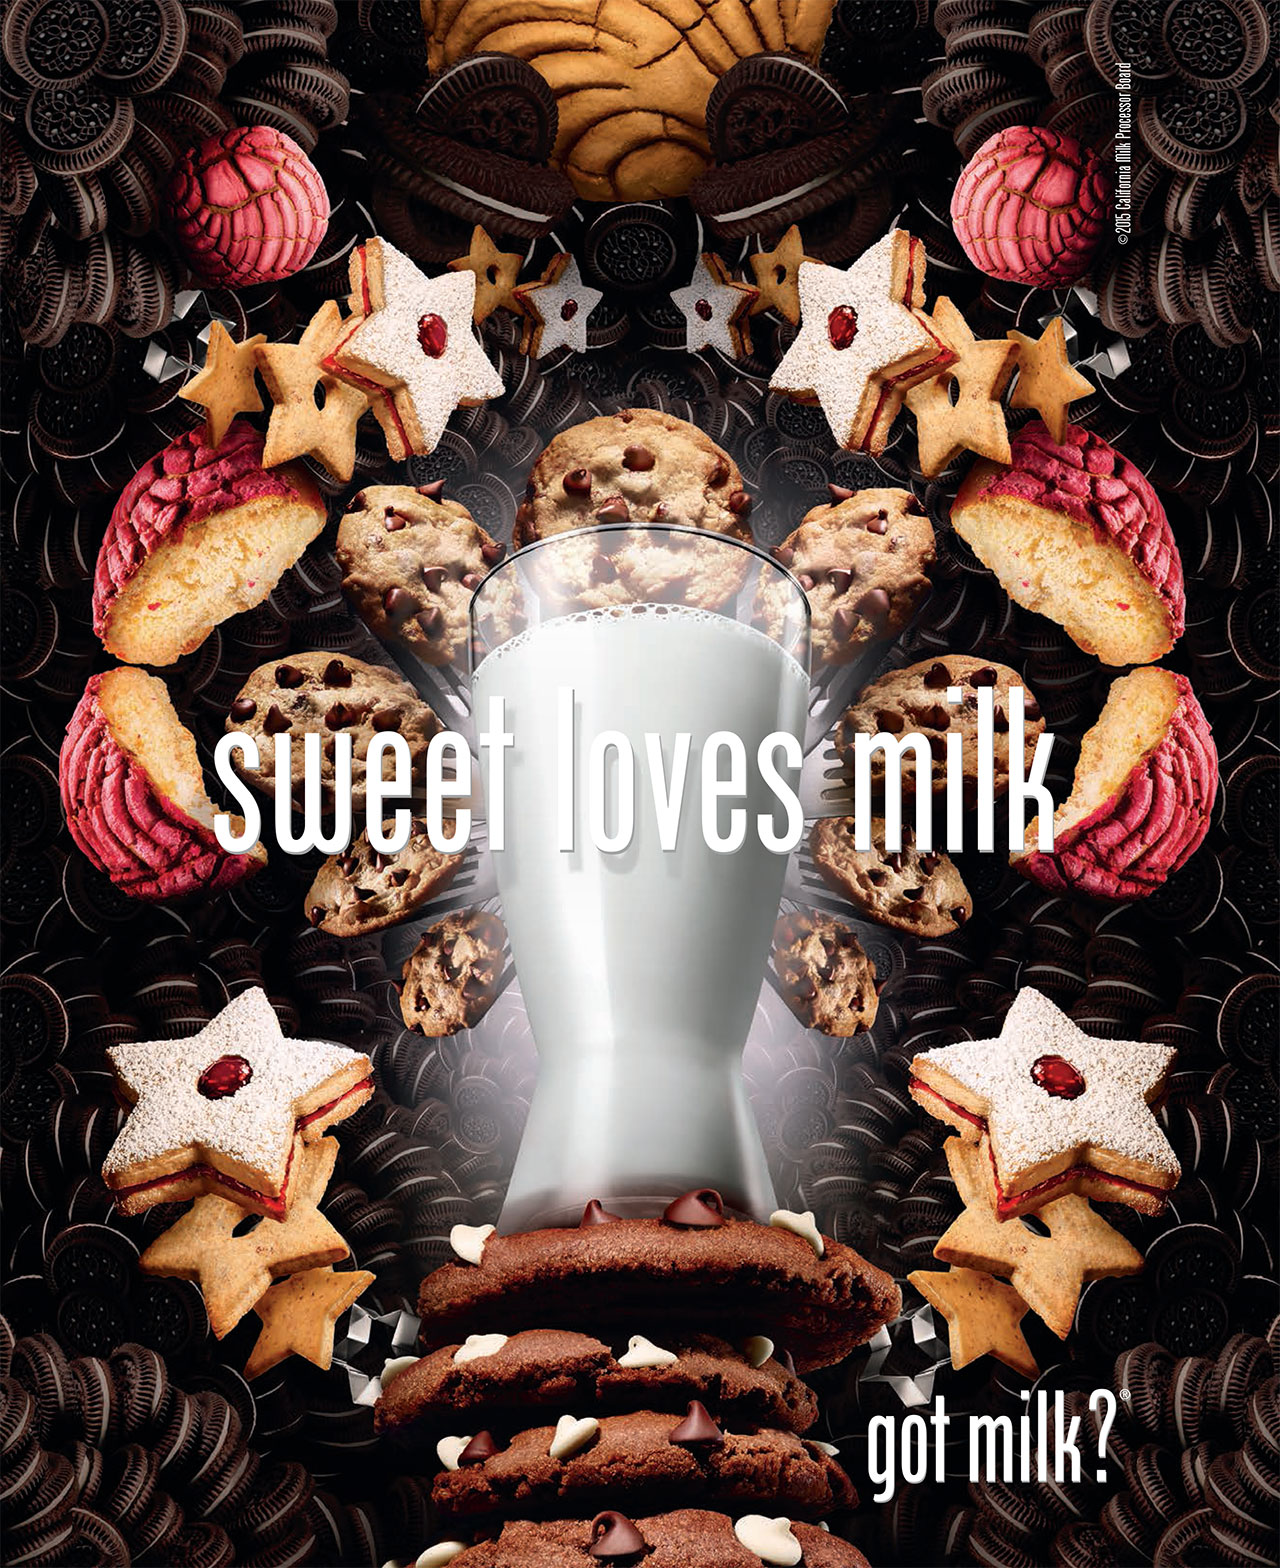 Aka Milky Love Porn got milk?' broadens its palate, pairing with sweet and spicy